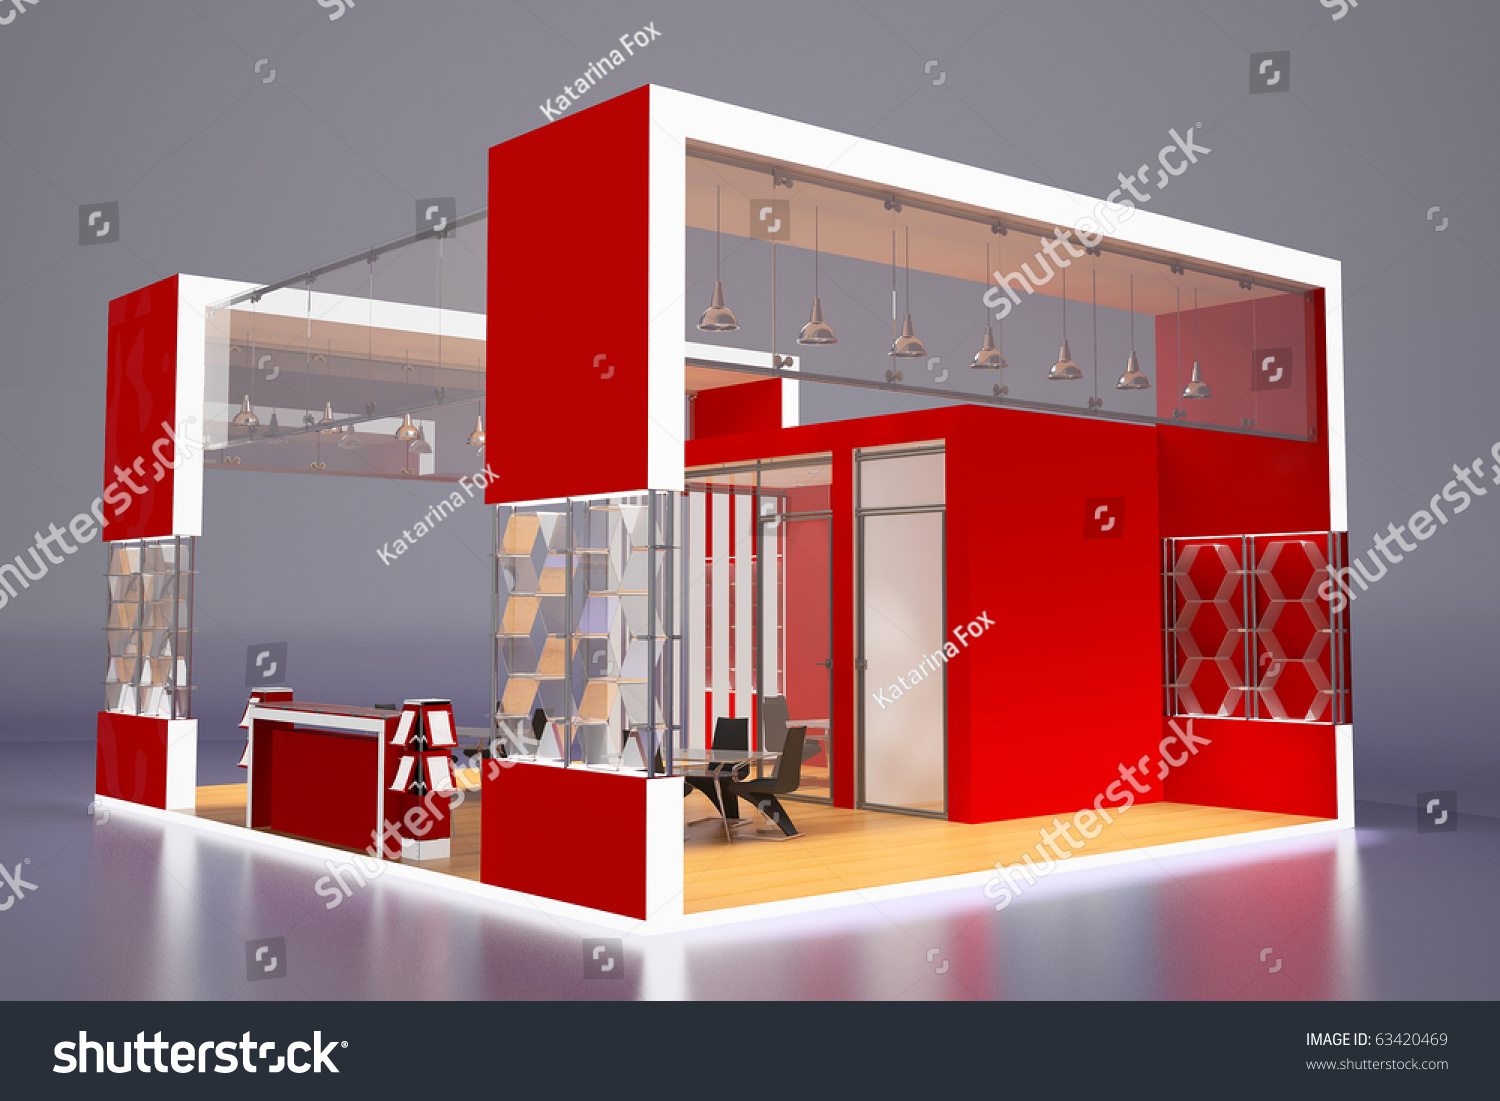 Modern Exhibition Stand Goal : D render modern red exhibition stand stock illustration